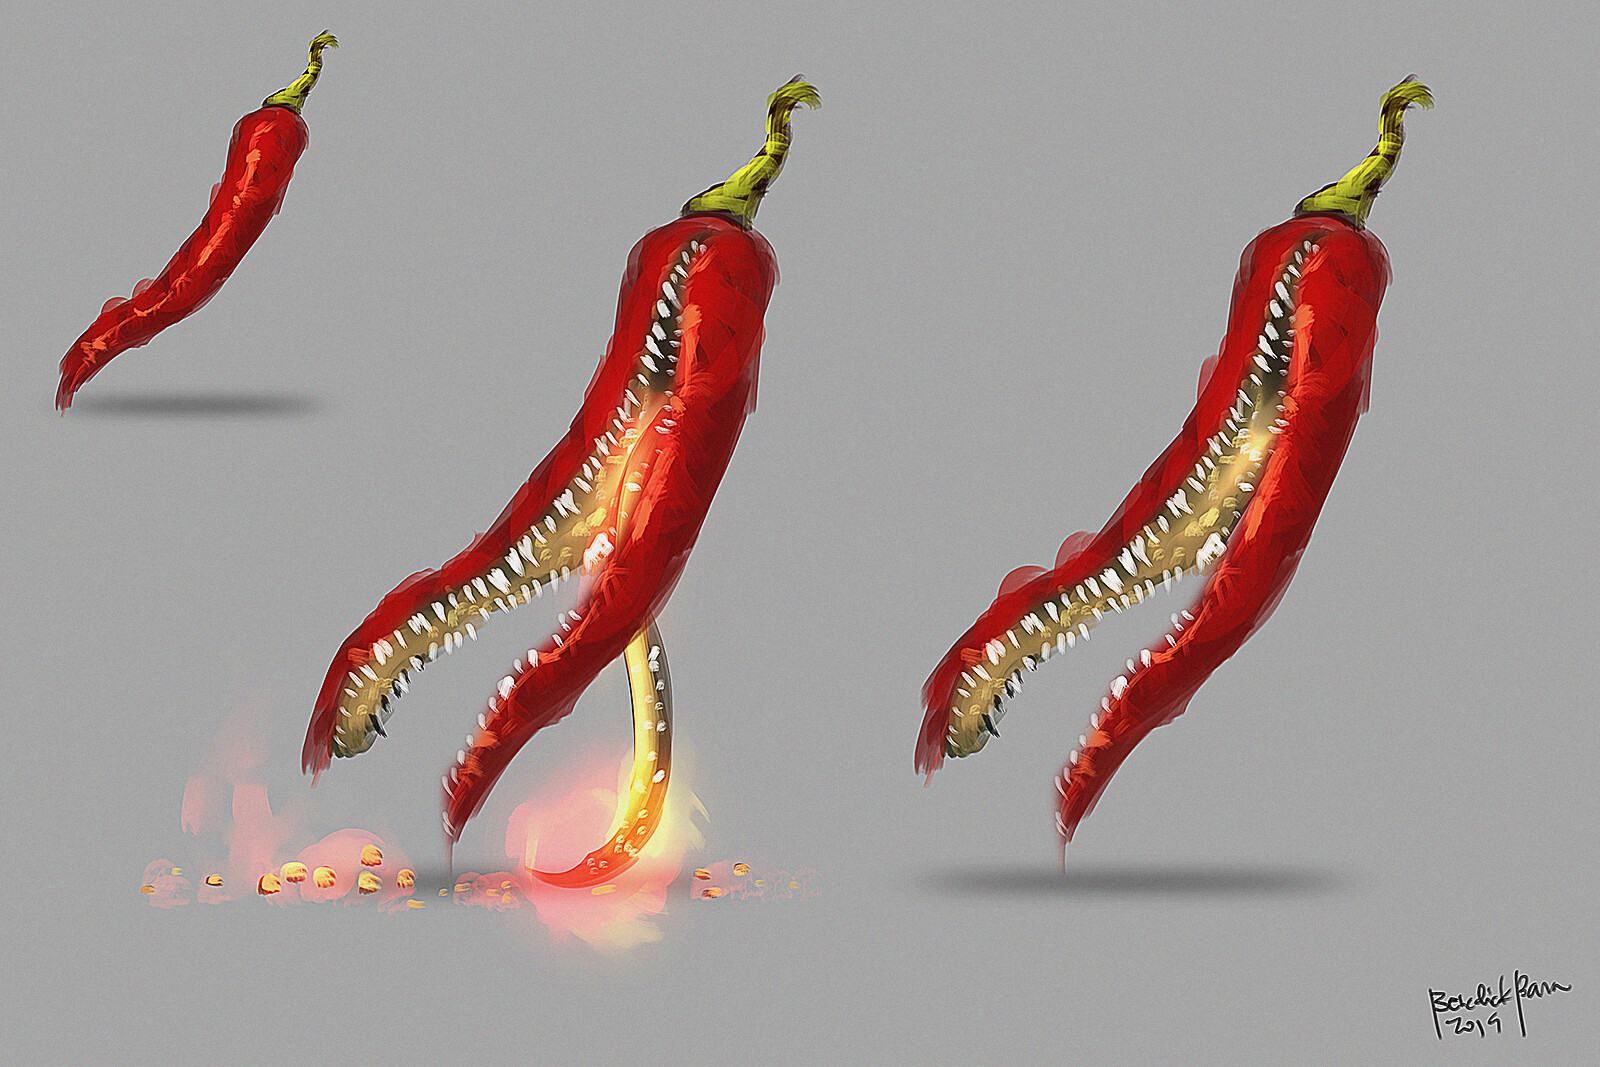 """A Philippine native pepper called """"Sili"""" turned into a giant fire spitting monster :D"""